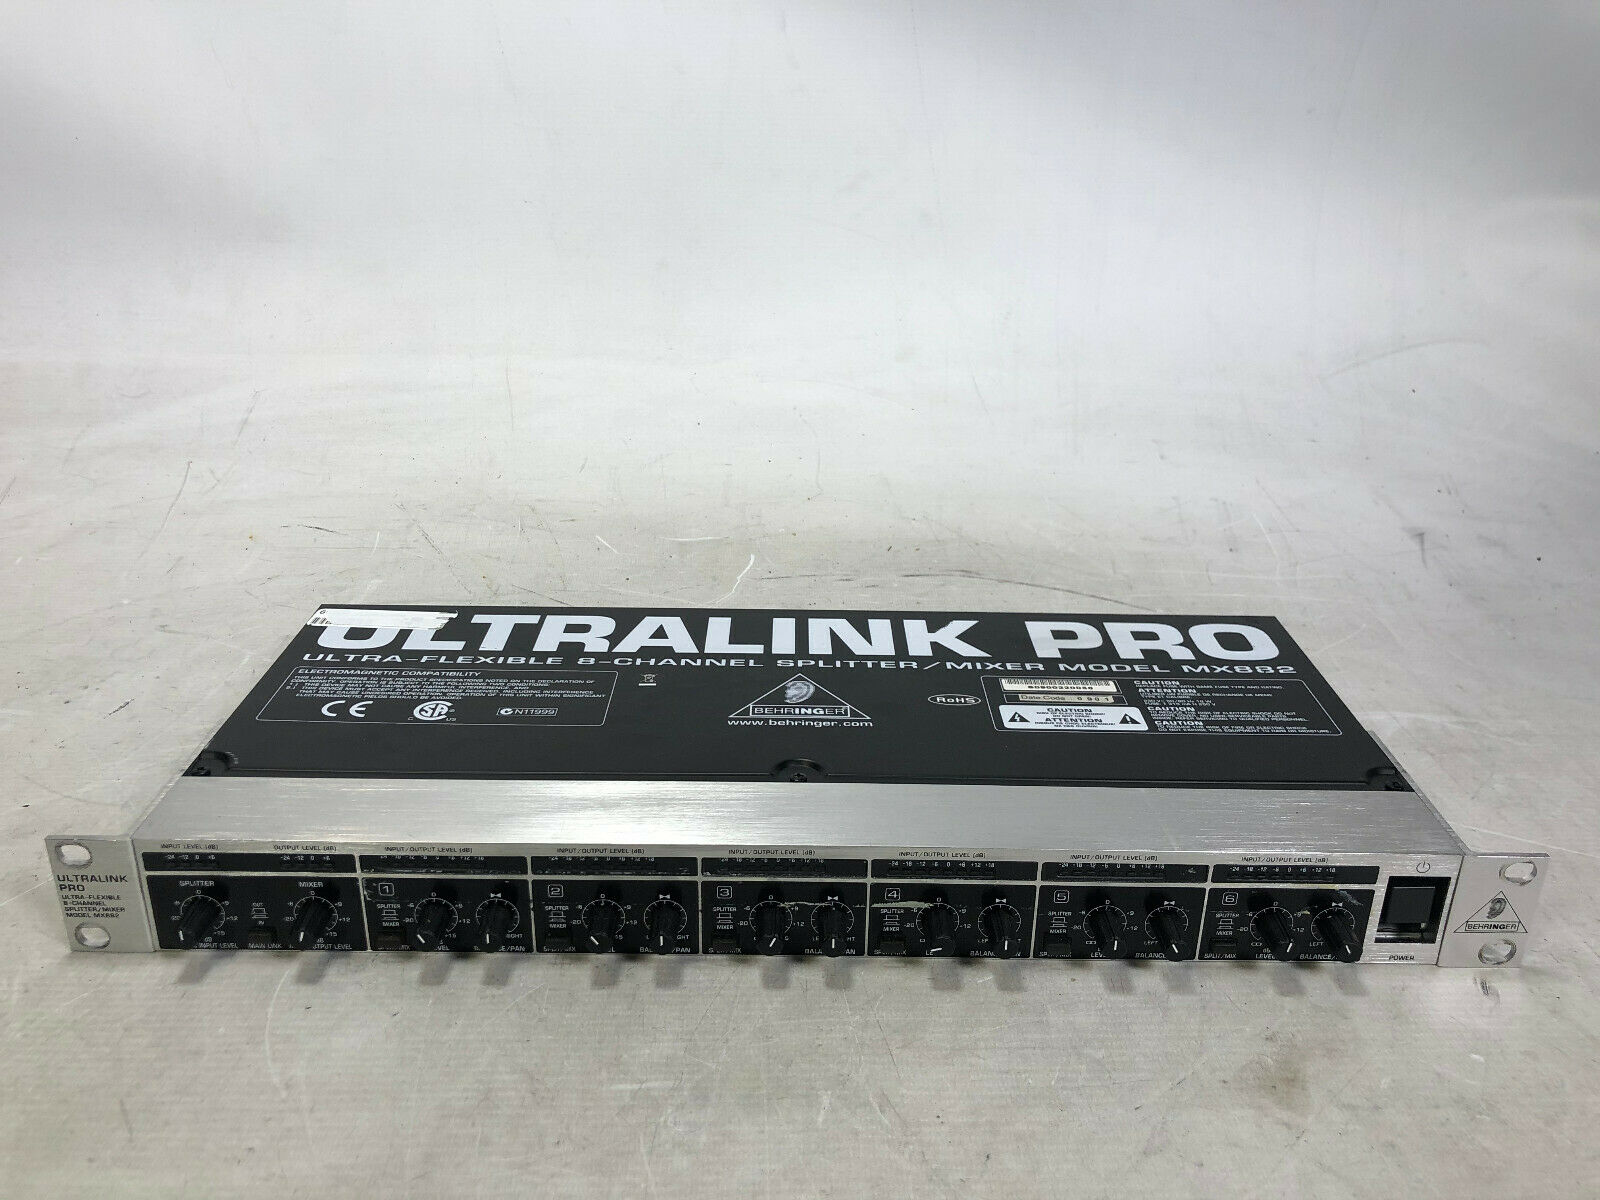 Behringer Ultralink Pro MX882 Ultra-Flexible 8-Channel Splitter Mixer